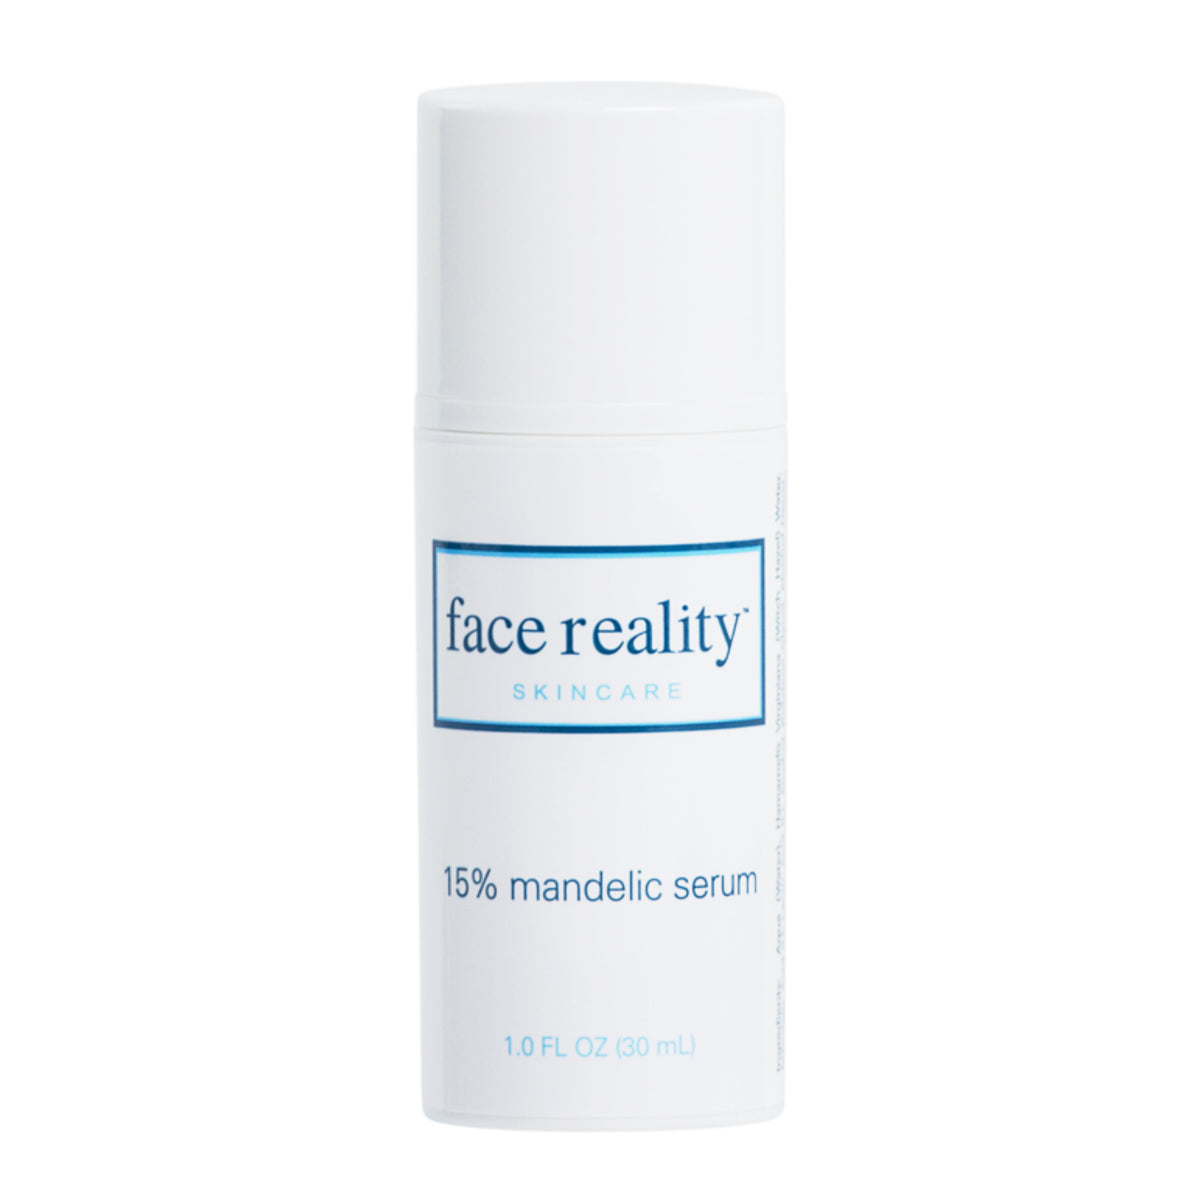 FACE REALITY - Mandelic Serum 15% - Beauty Nook